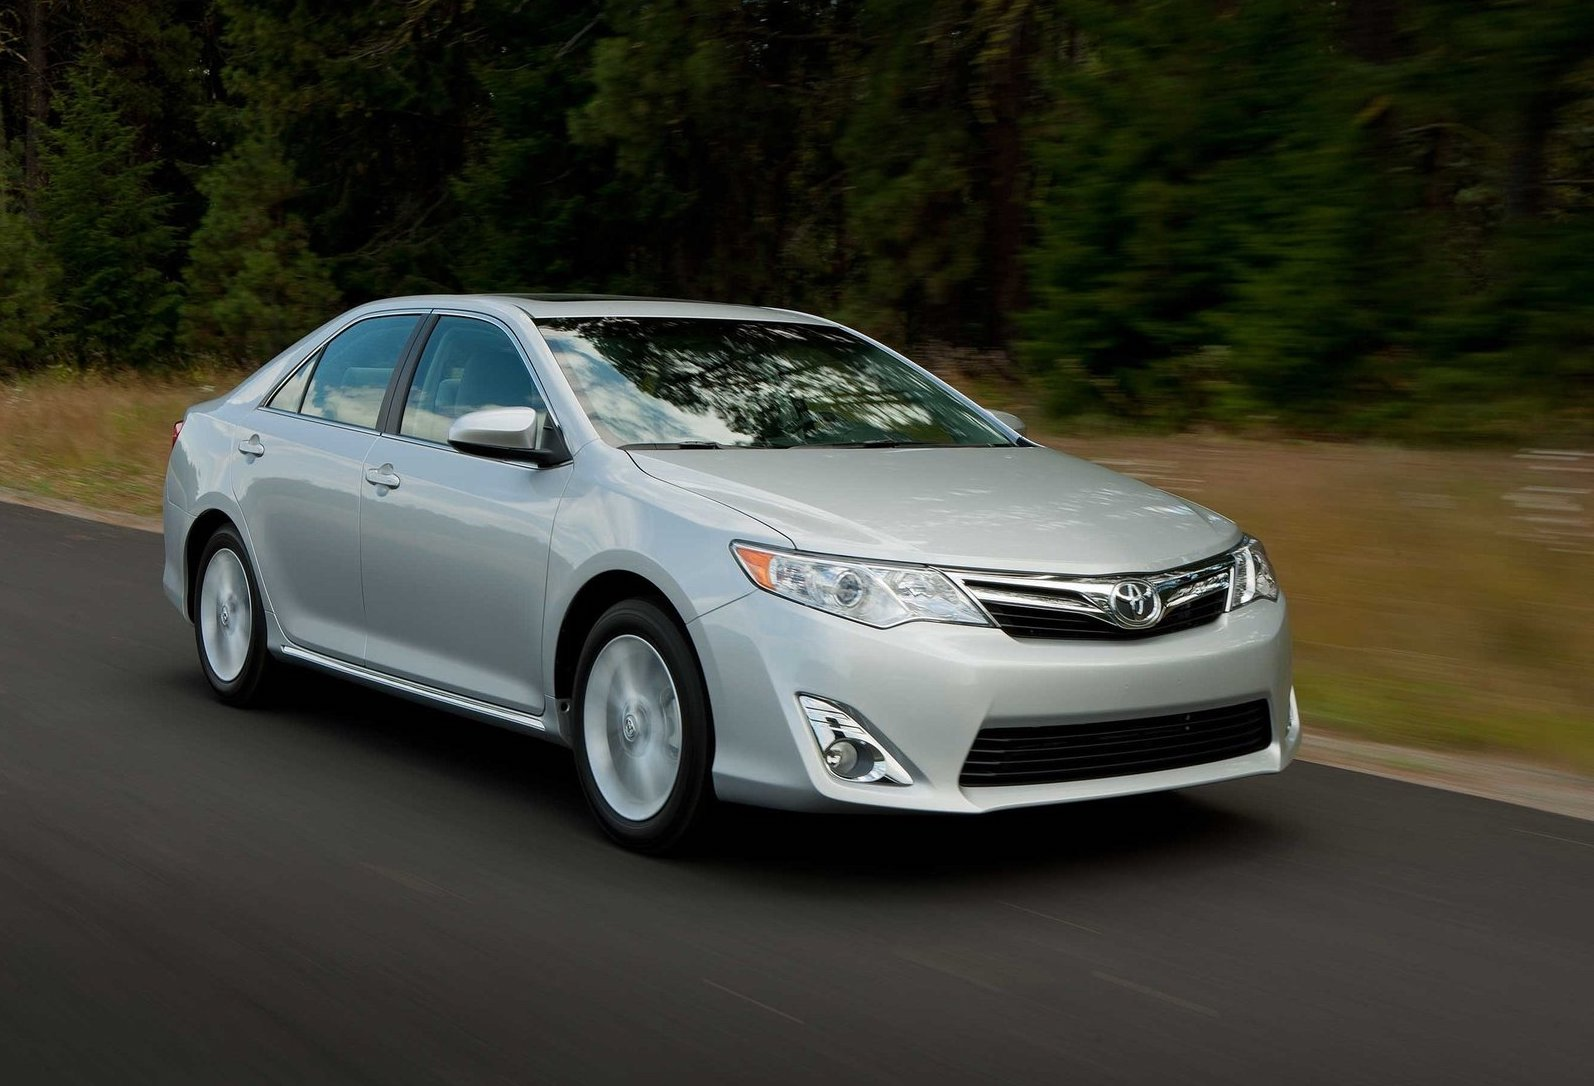 A silver 2012 Toyota Camry driving at speed on a scenic road near an evergreen forest.